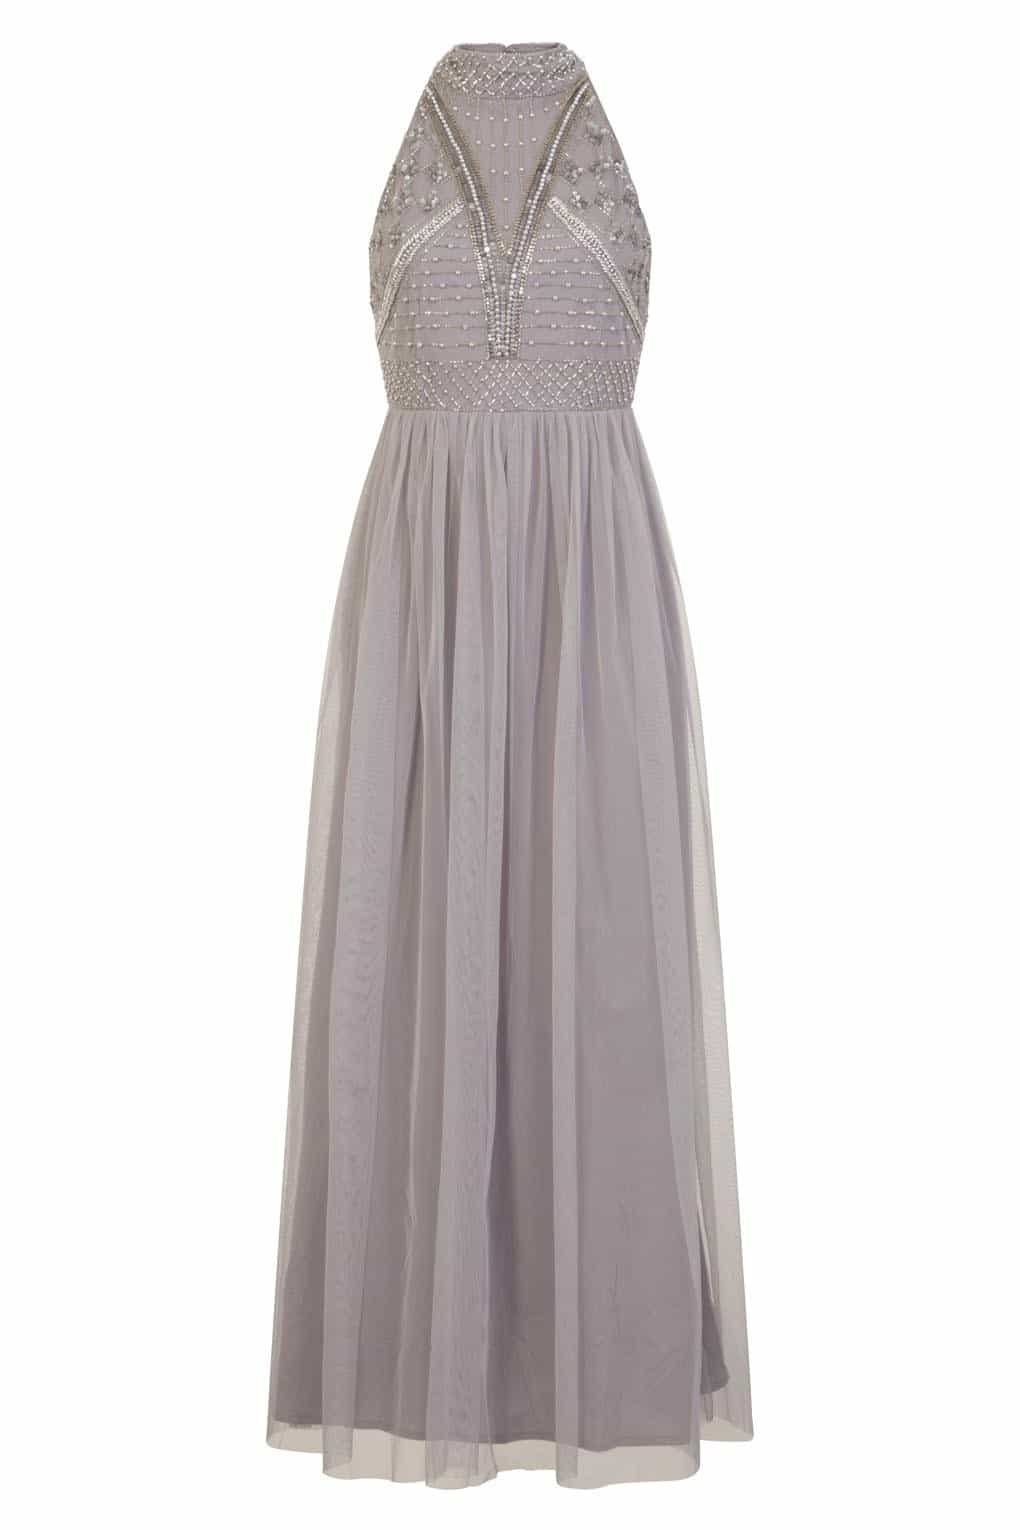 Lace & Beads Acinthe Grey Dress